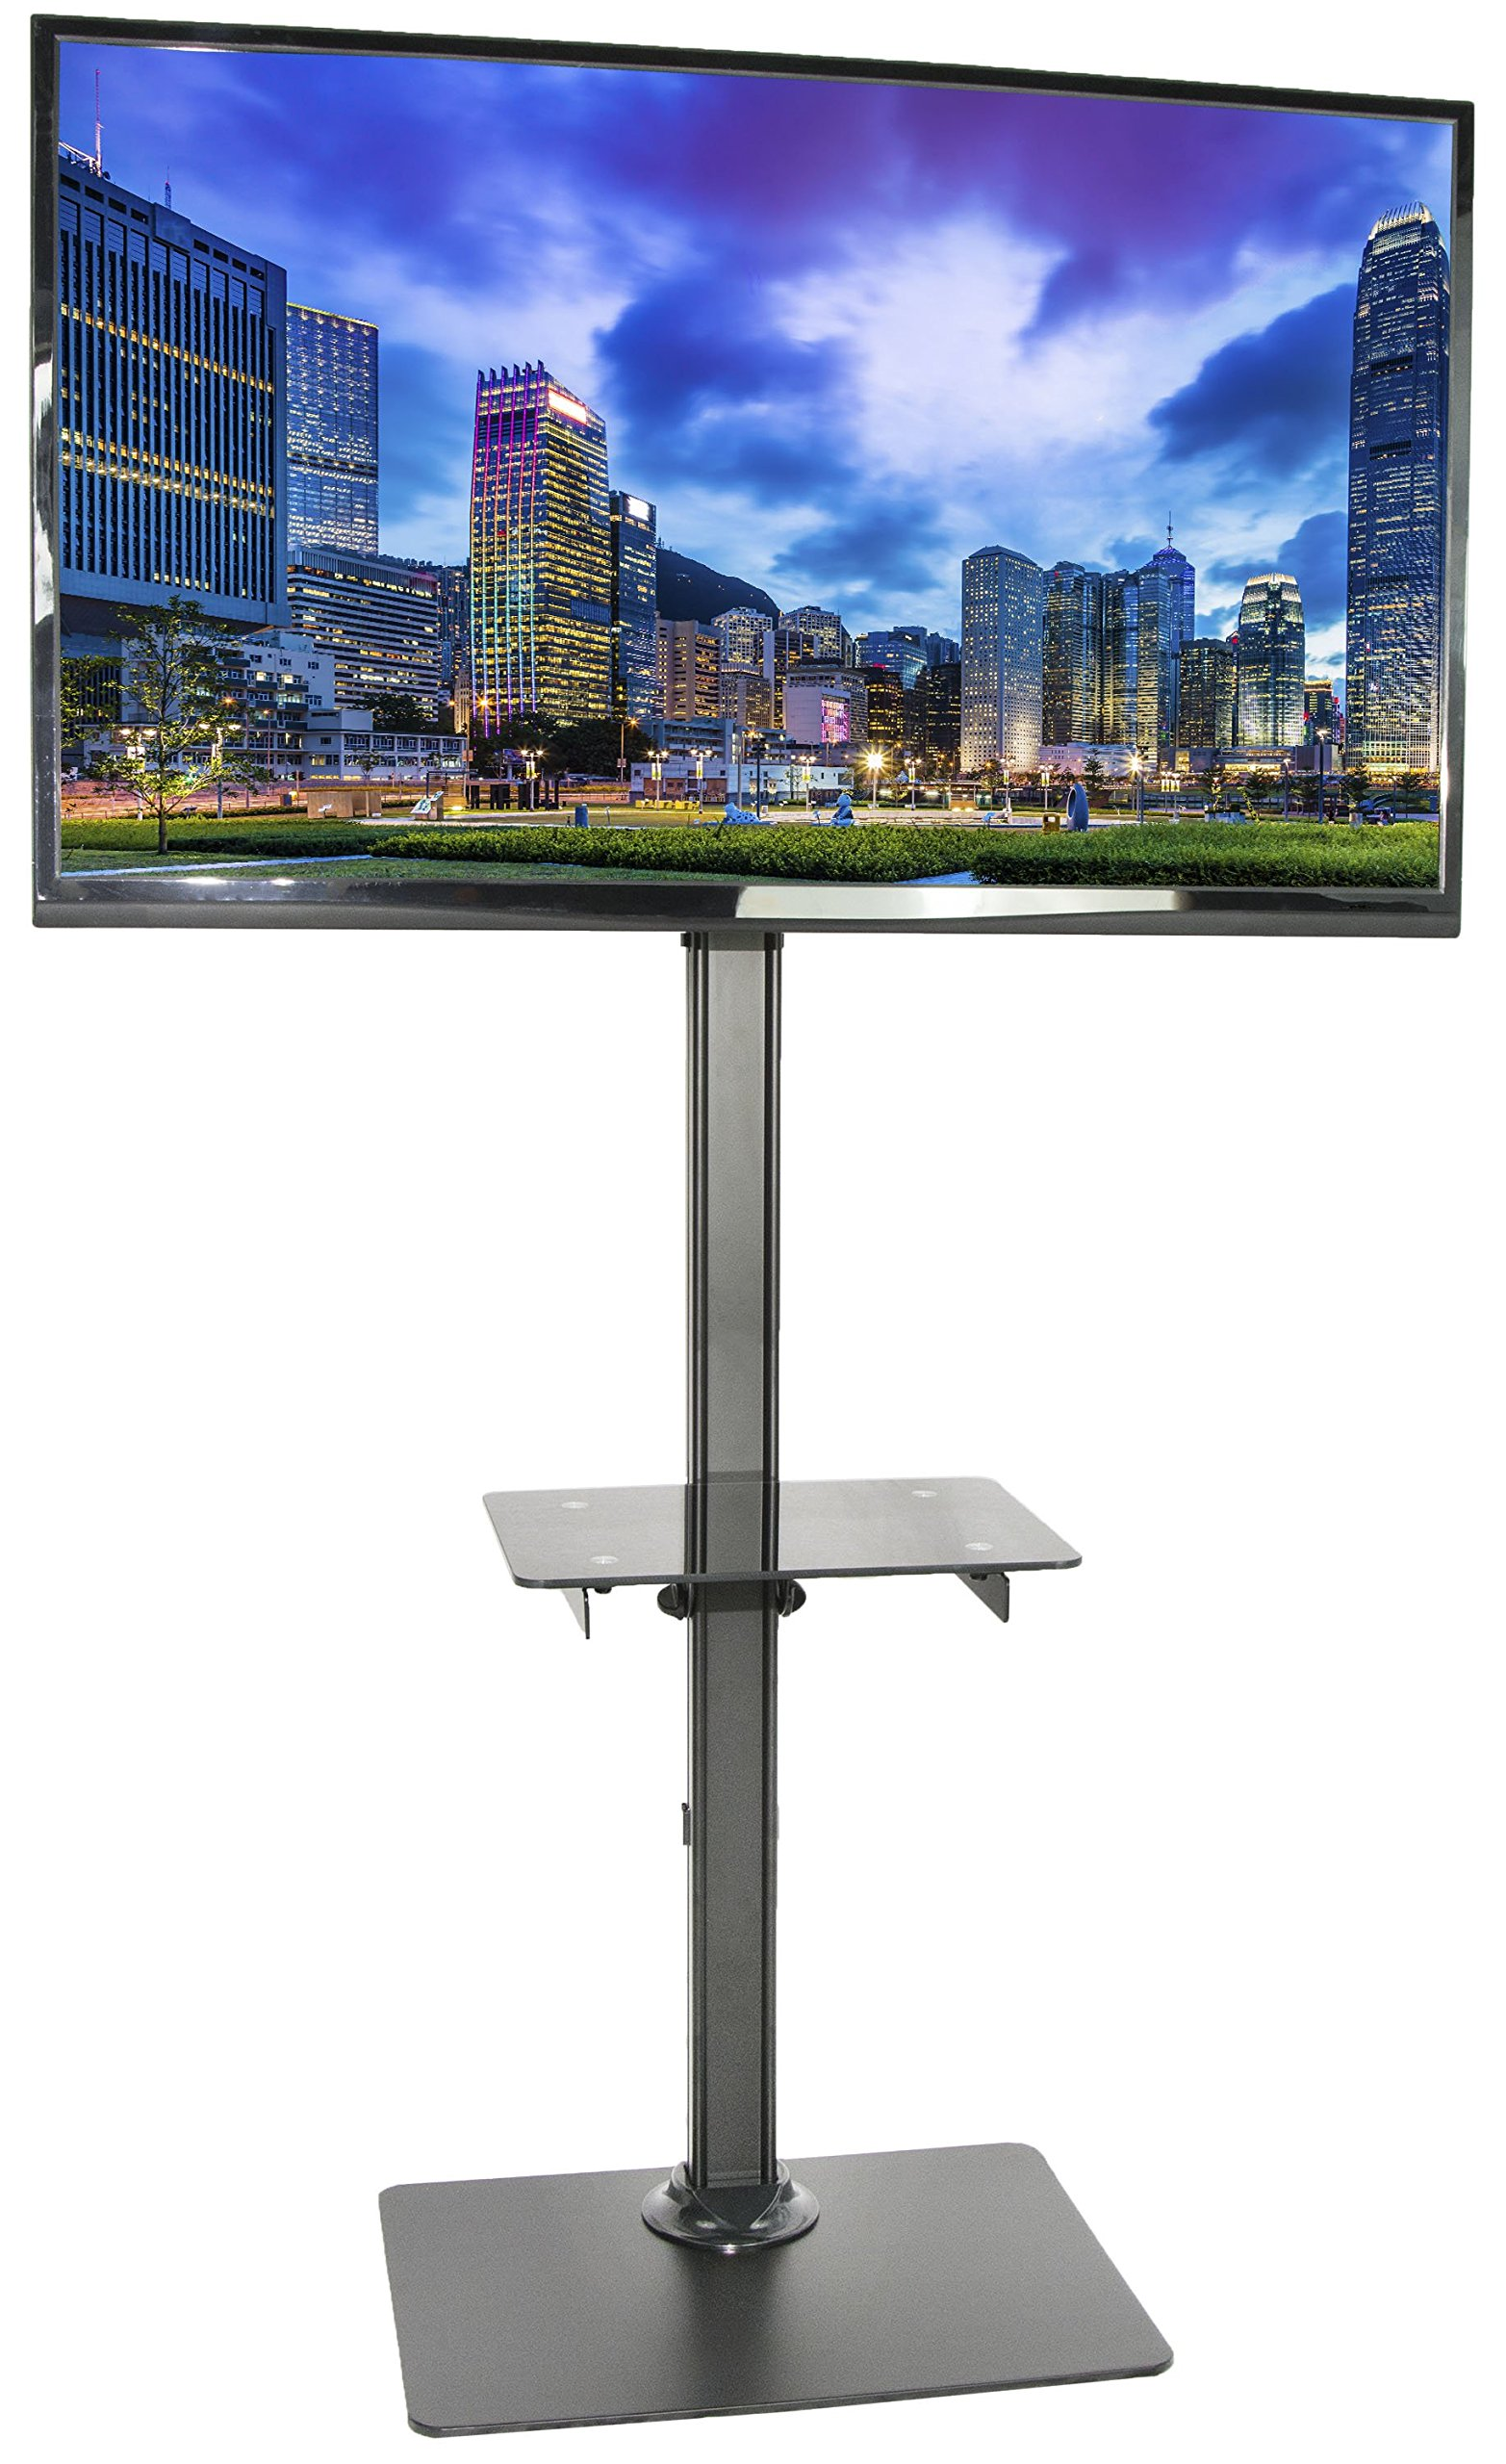 VIVO Black Steel and Glass Shelf TV Presentation Floor Stand LCD LED Plasma Flat Screen Stationary Mount fits 13'' to 55'' Screens (STAND-TV08)